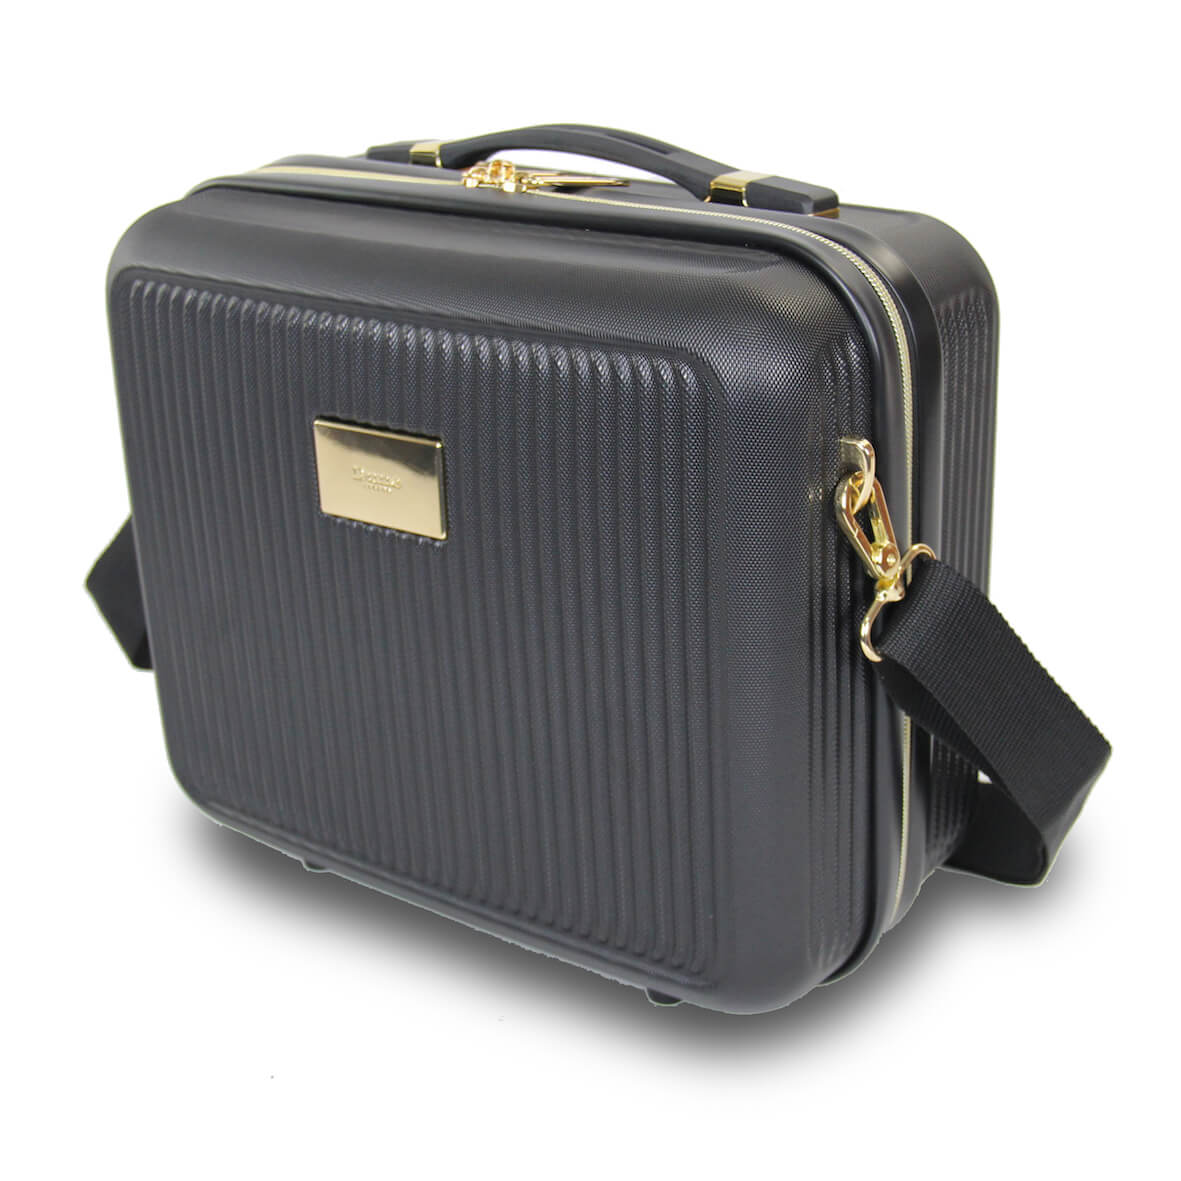 Dune London Tolive Vanity Case